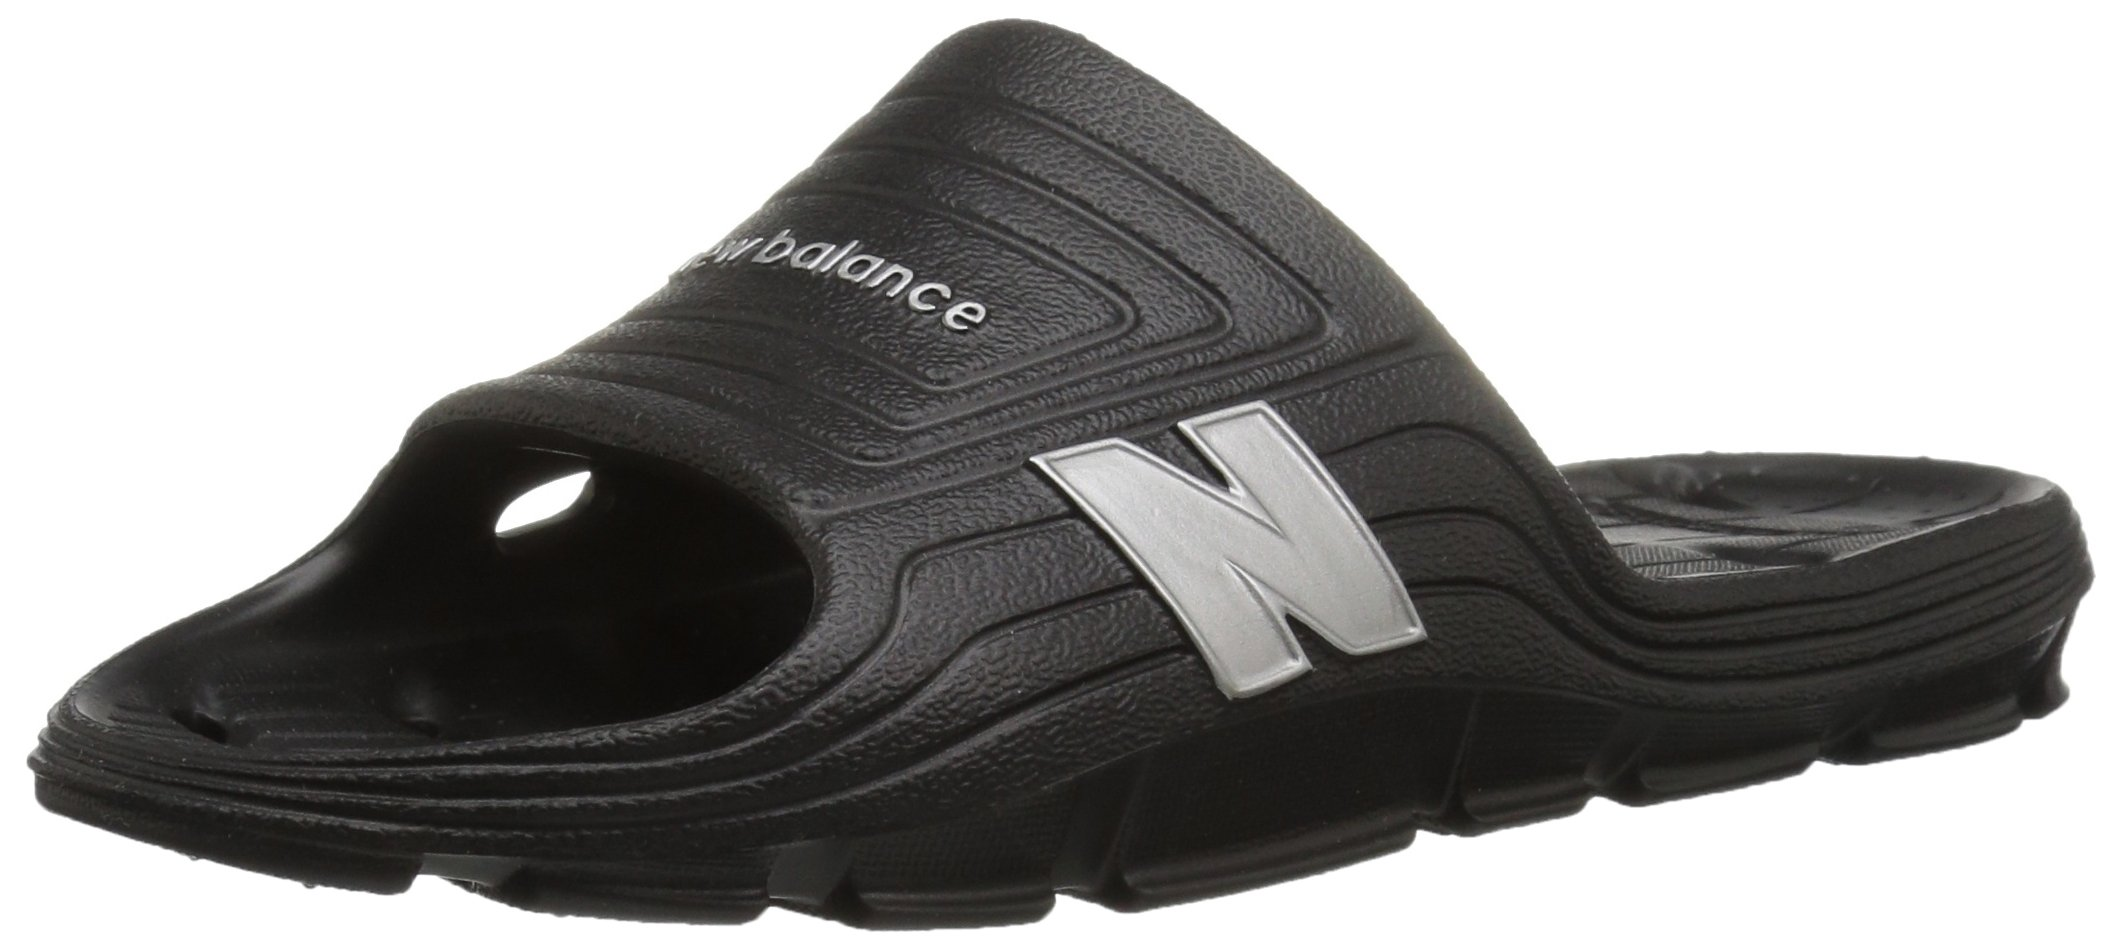 New Balance Men's Float Slide, Black/Silver, 10 D US